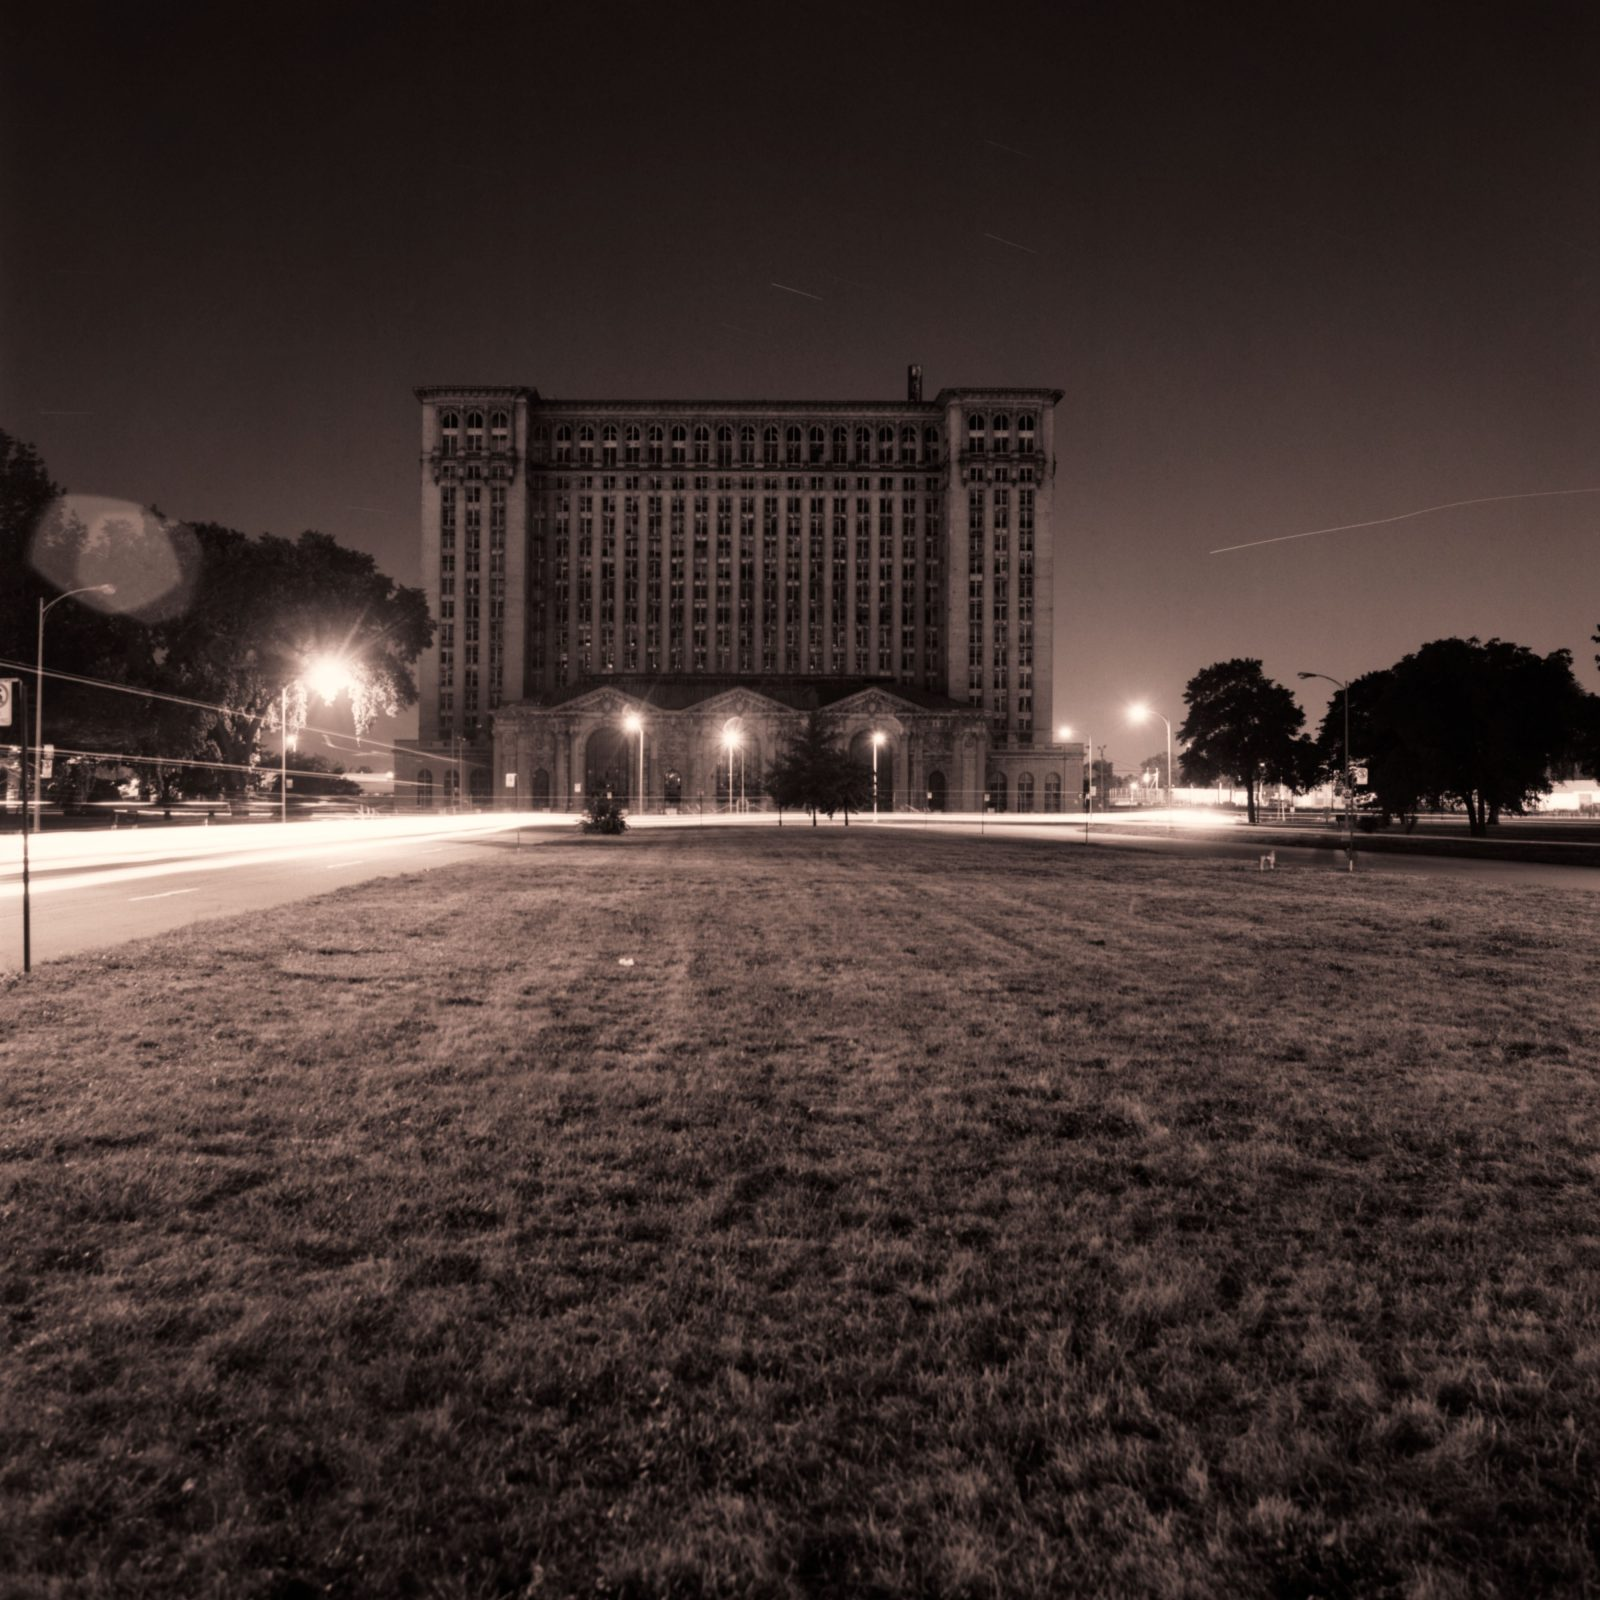 Michigan Central Station at night